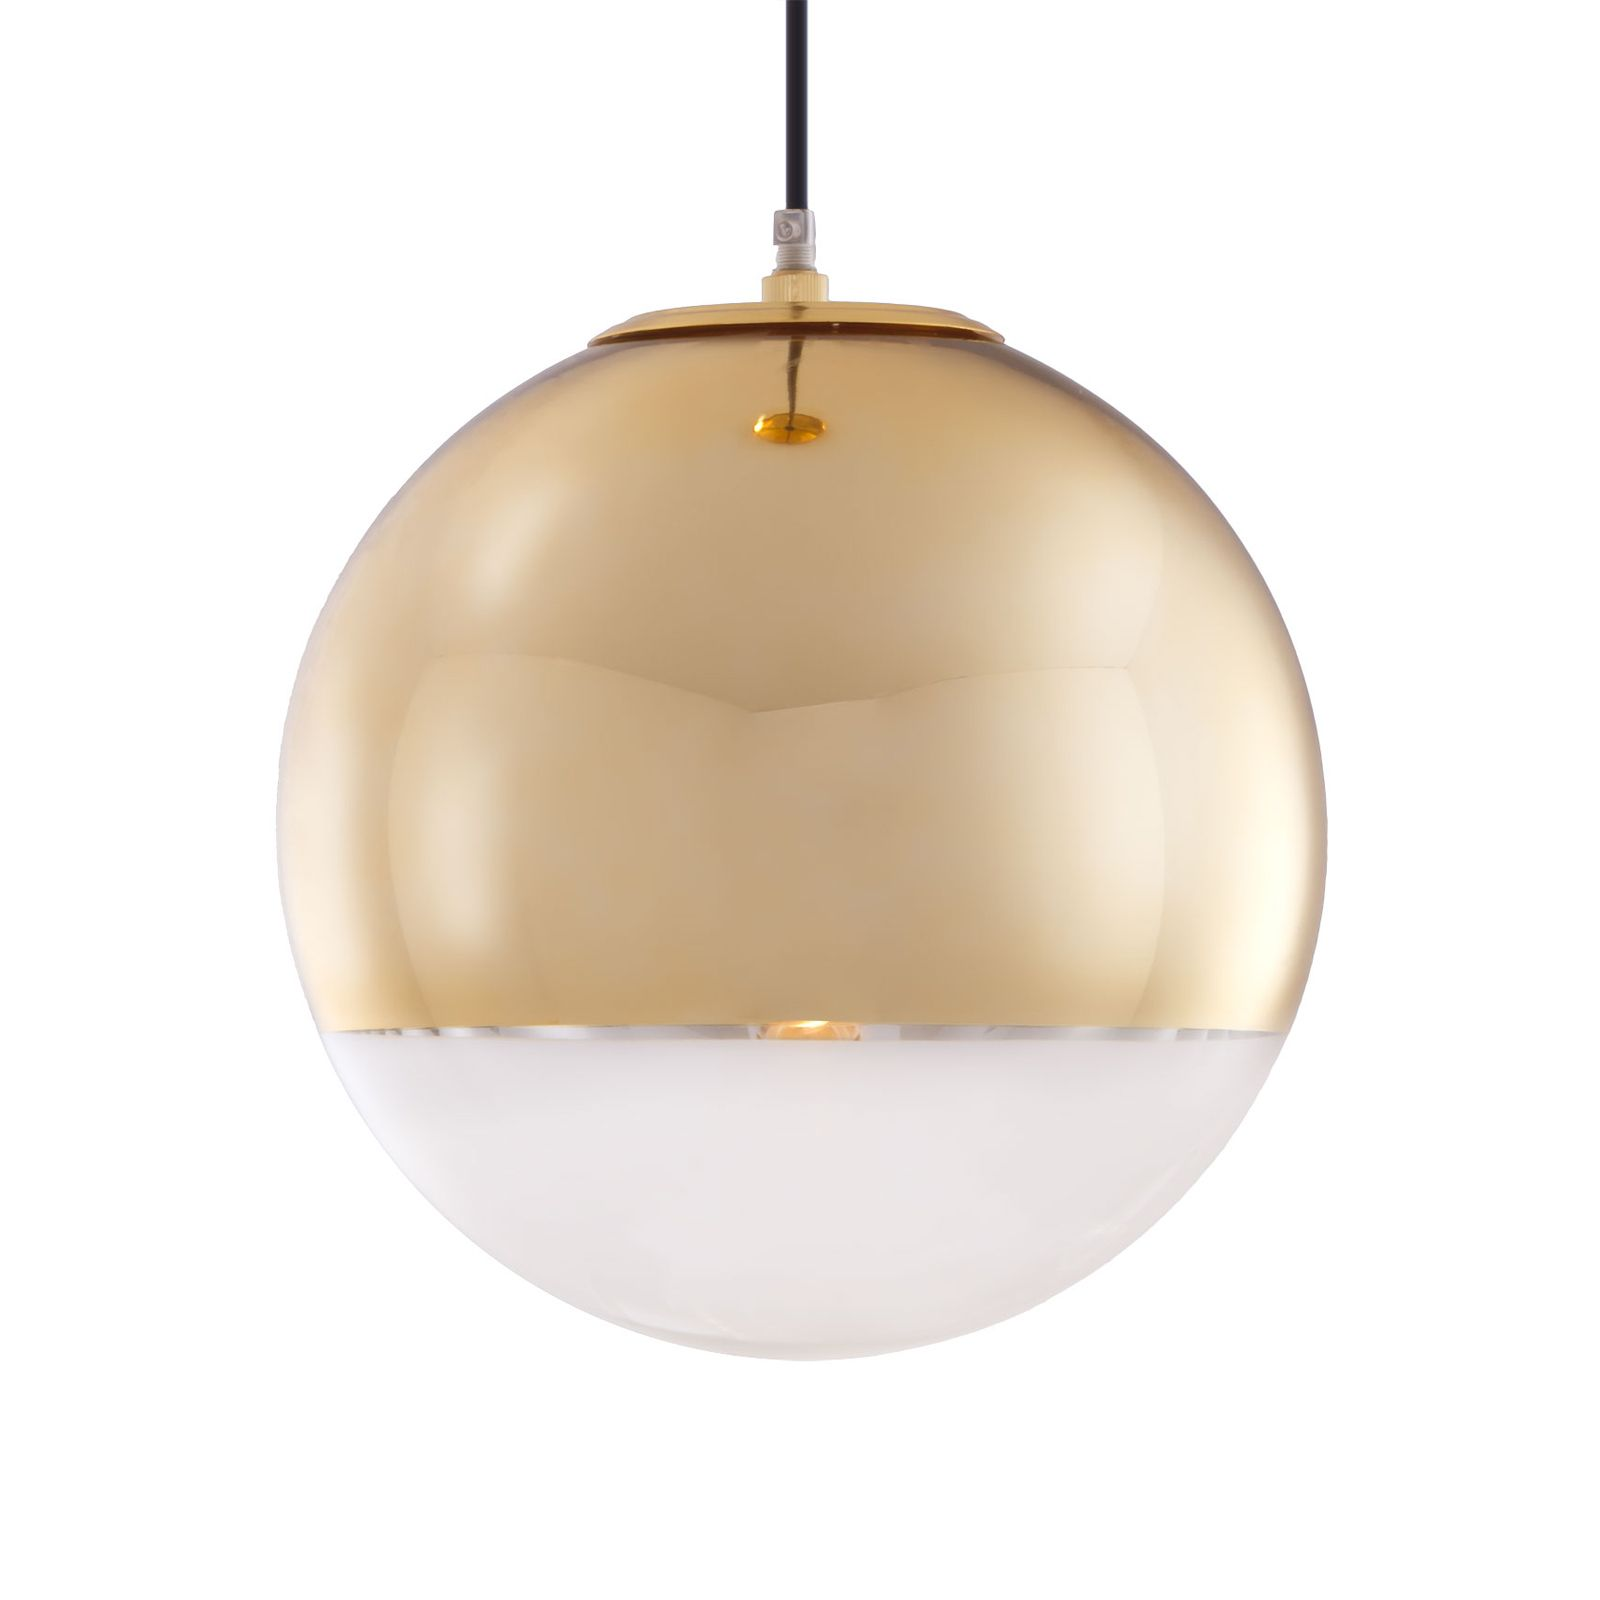 Pin By Jungalow By Justina Blakeney On Modern Bohemian Home Inspiration Decor Pendant Lamp